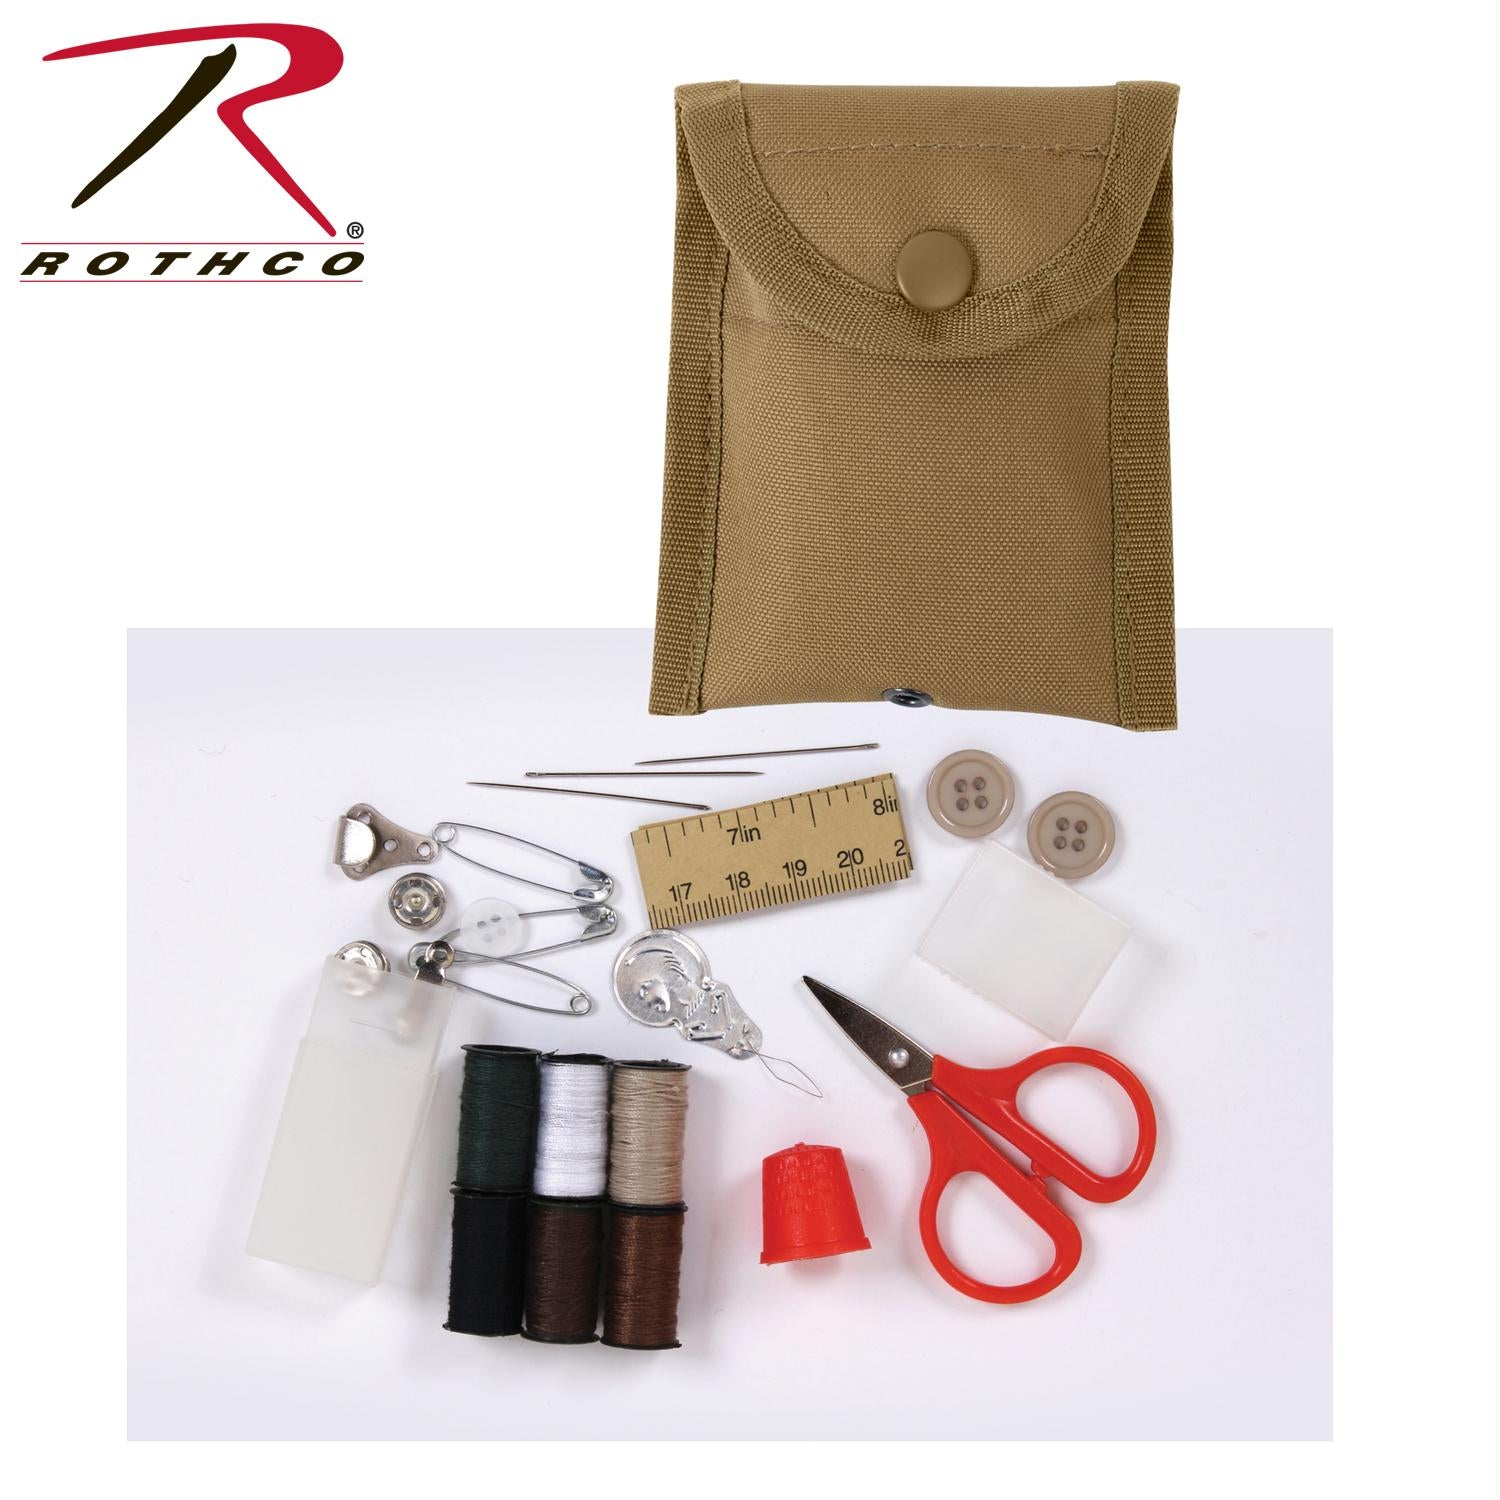 Rothco G.I. Style MultiCam Sewing & Repair Kit